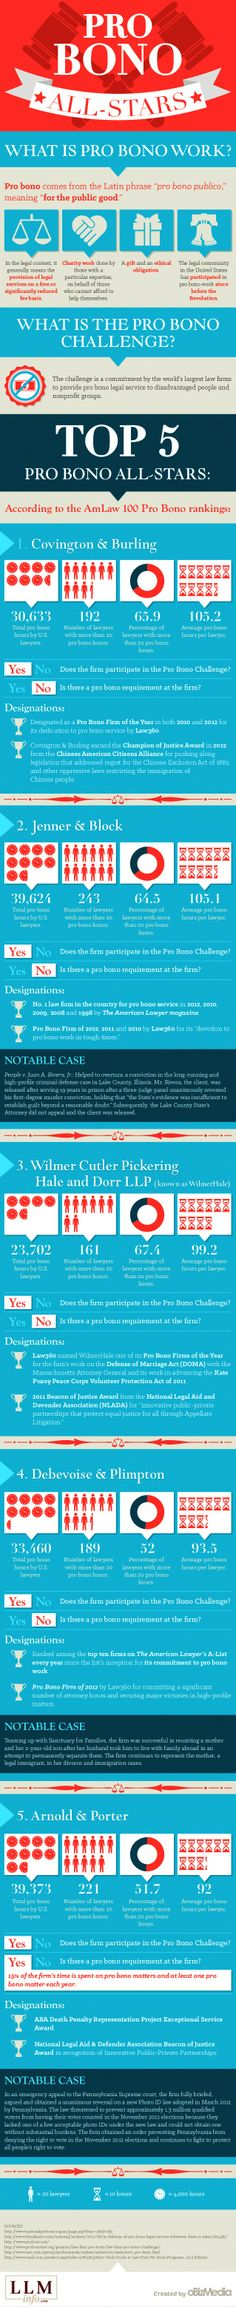 Pro bono service challenge between law firms